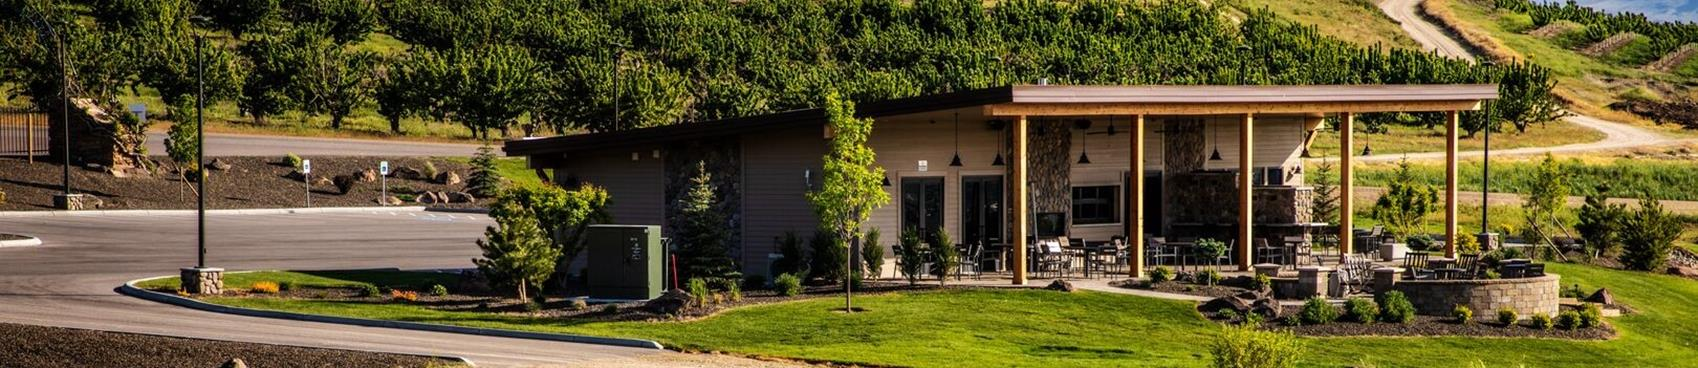 A image of Sawtooth Winery